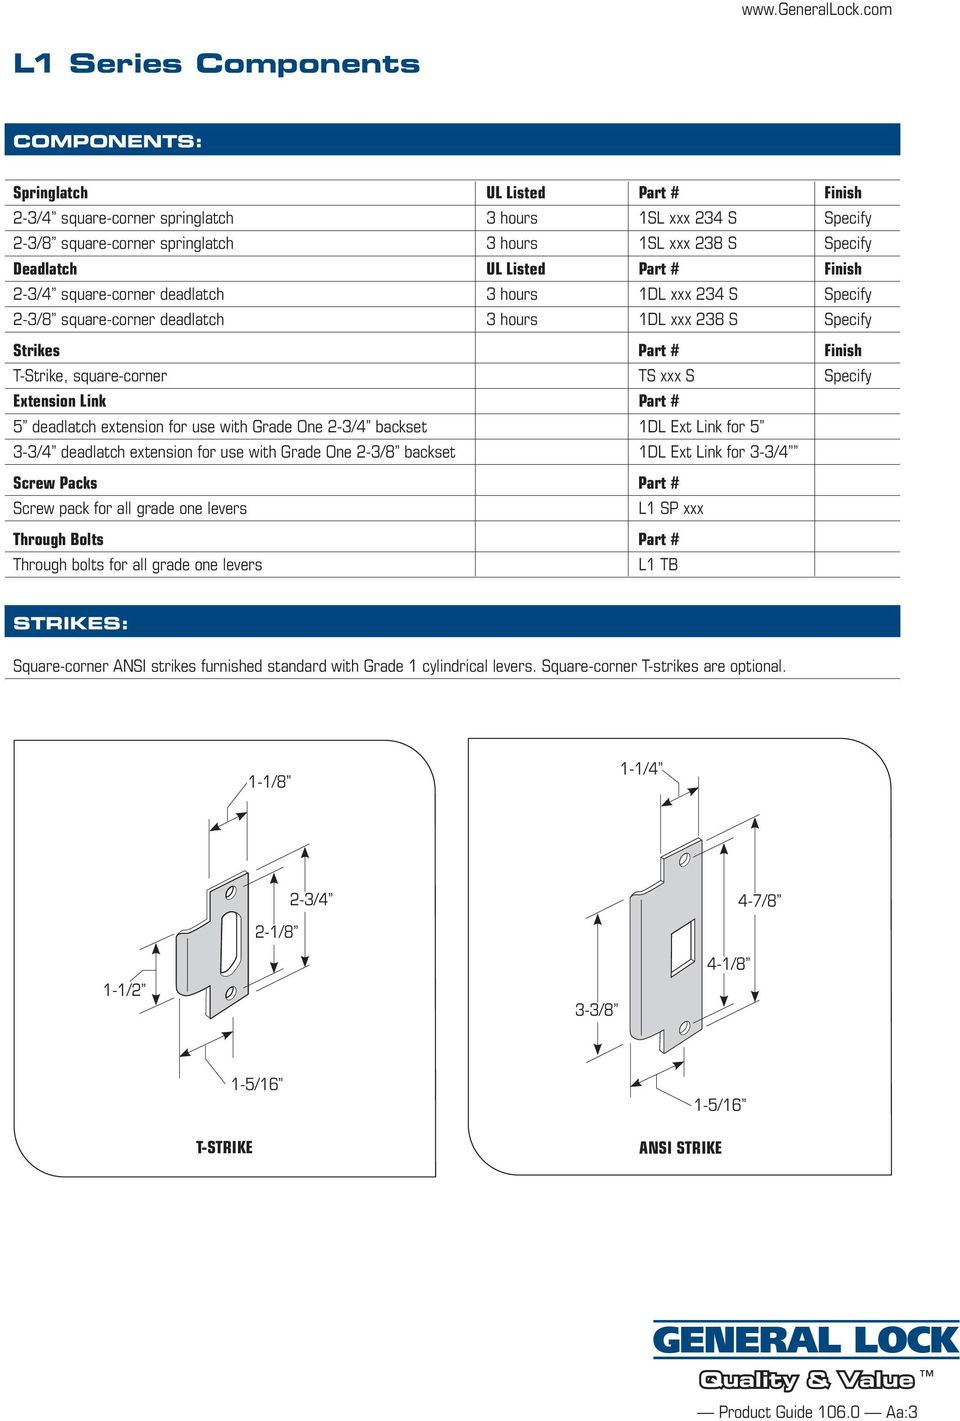 TS xxx S Specify Extension Link Part # 5 deadlatch extension for use with Grade One 2-3/4 backset 1DL Ext Link for 5 3-3/4 deadlatch extension for use with Grade One 2-3/8 backset 1DL Ext Link for